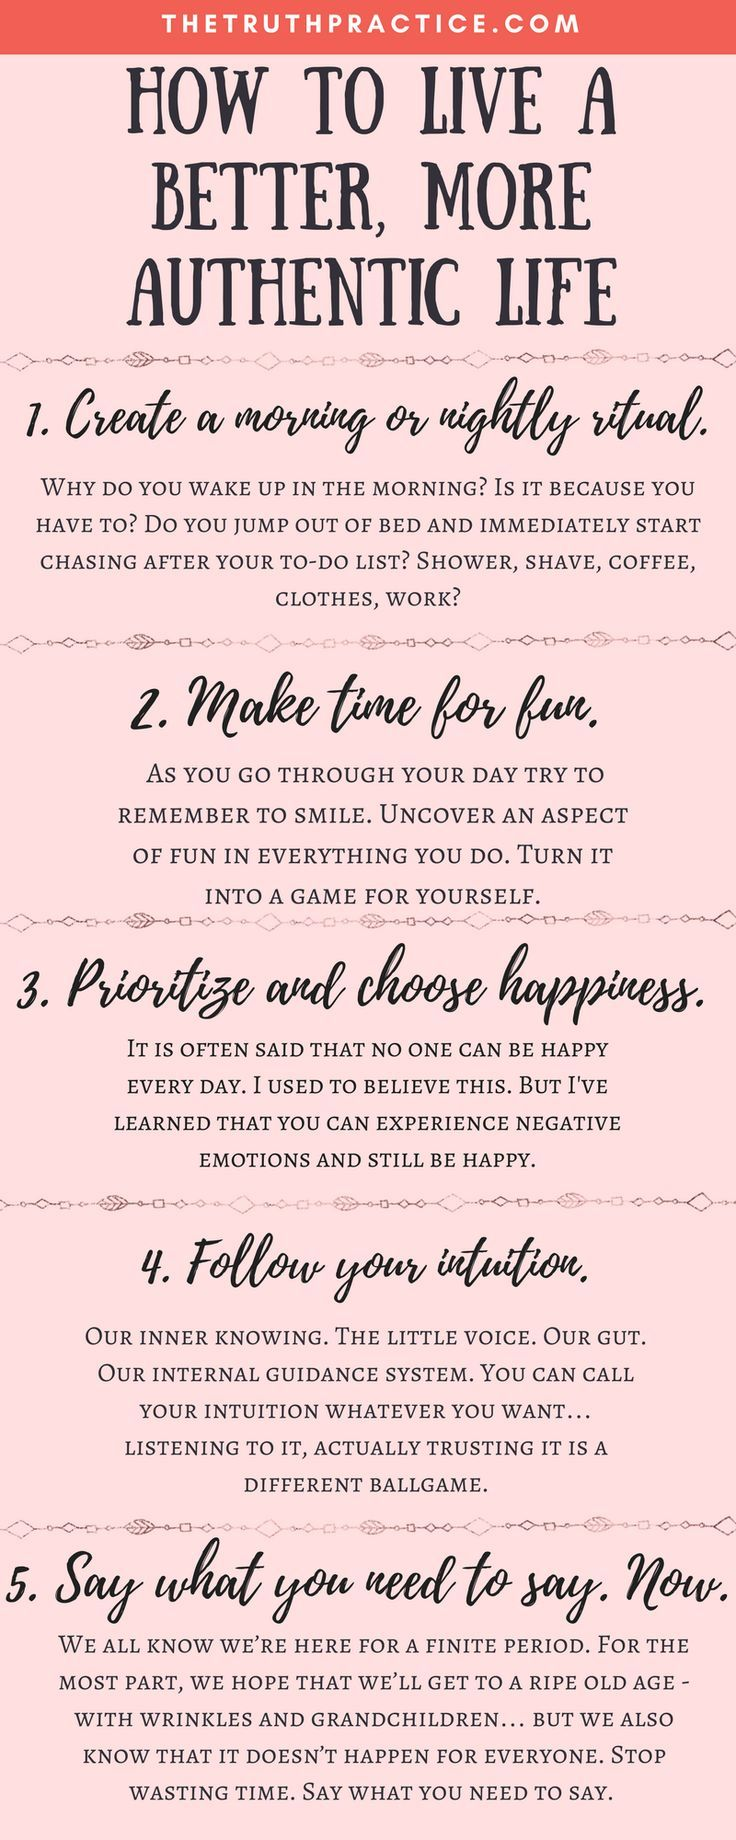 CLICK THE PIN FOR ALL 10 tips to help you amp up your authenticity, improve your life, become a better person, and trust your intuition! Wondering how to live an authentic life when everyone's always trying to get you to follow their rules and take their advice? Check out The Truth Practice to read about inspiration, authenticity, happy living, manifestation, getting rid of fear, intuition, self-love, self-care, words of wisdom, relationships, affirmations, finding passion, & positive quotes